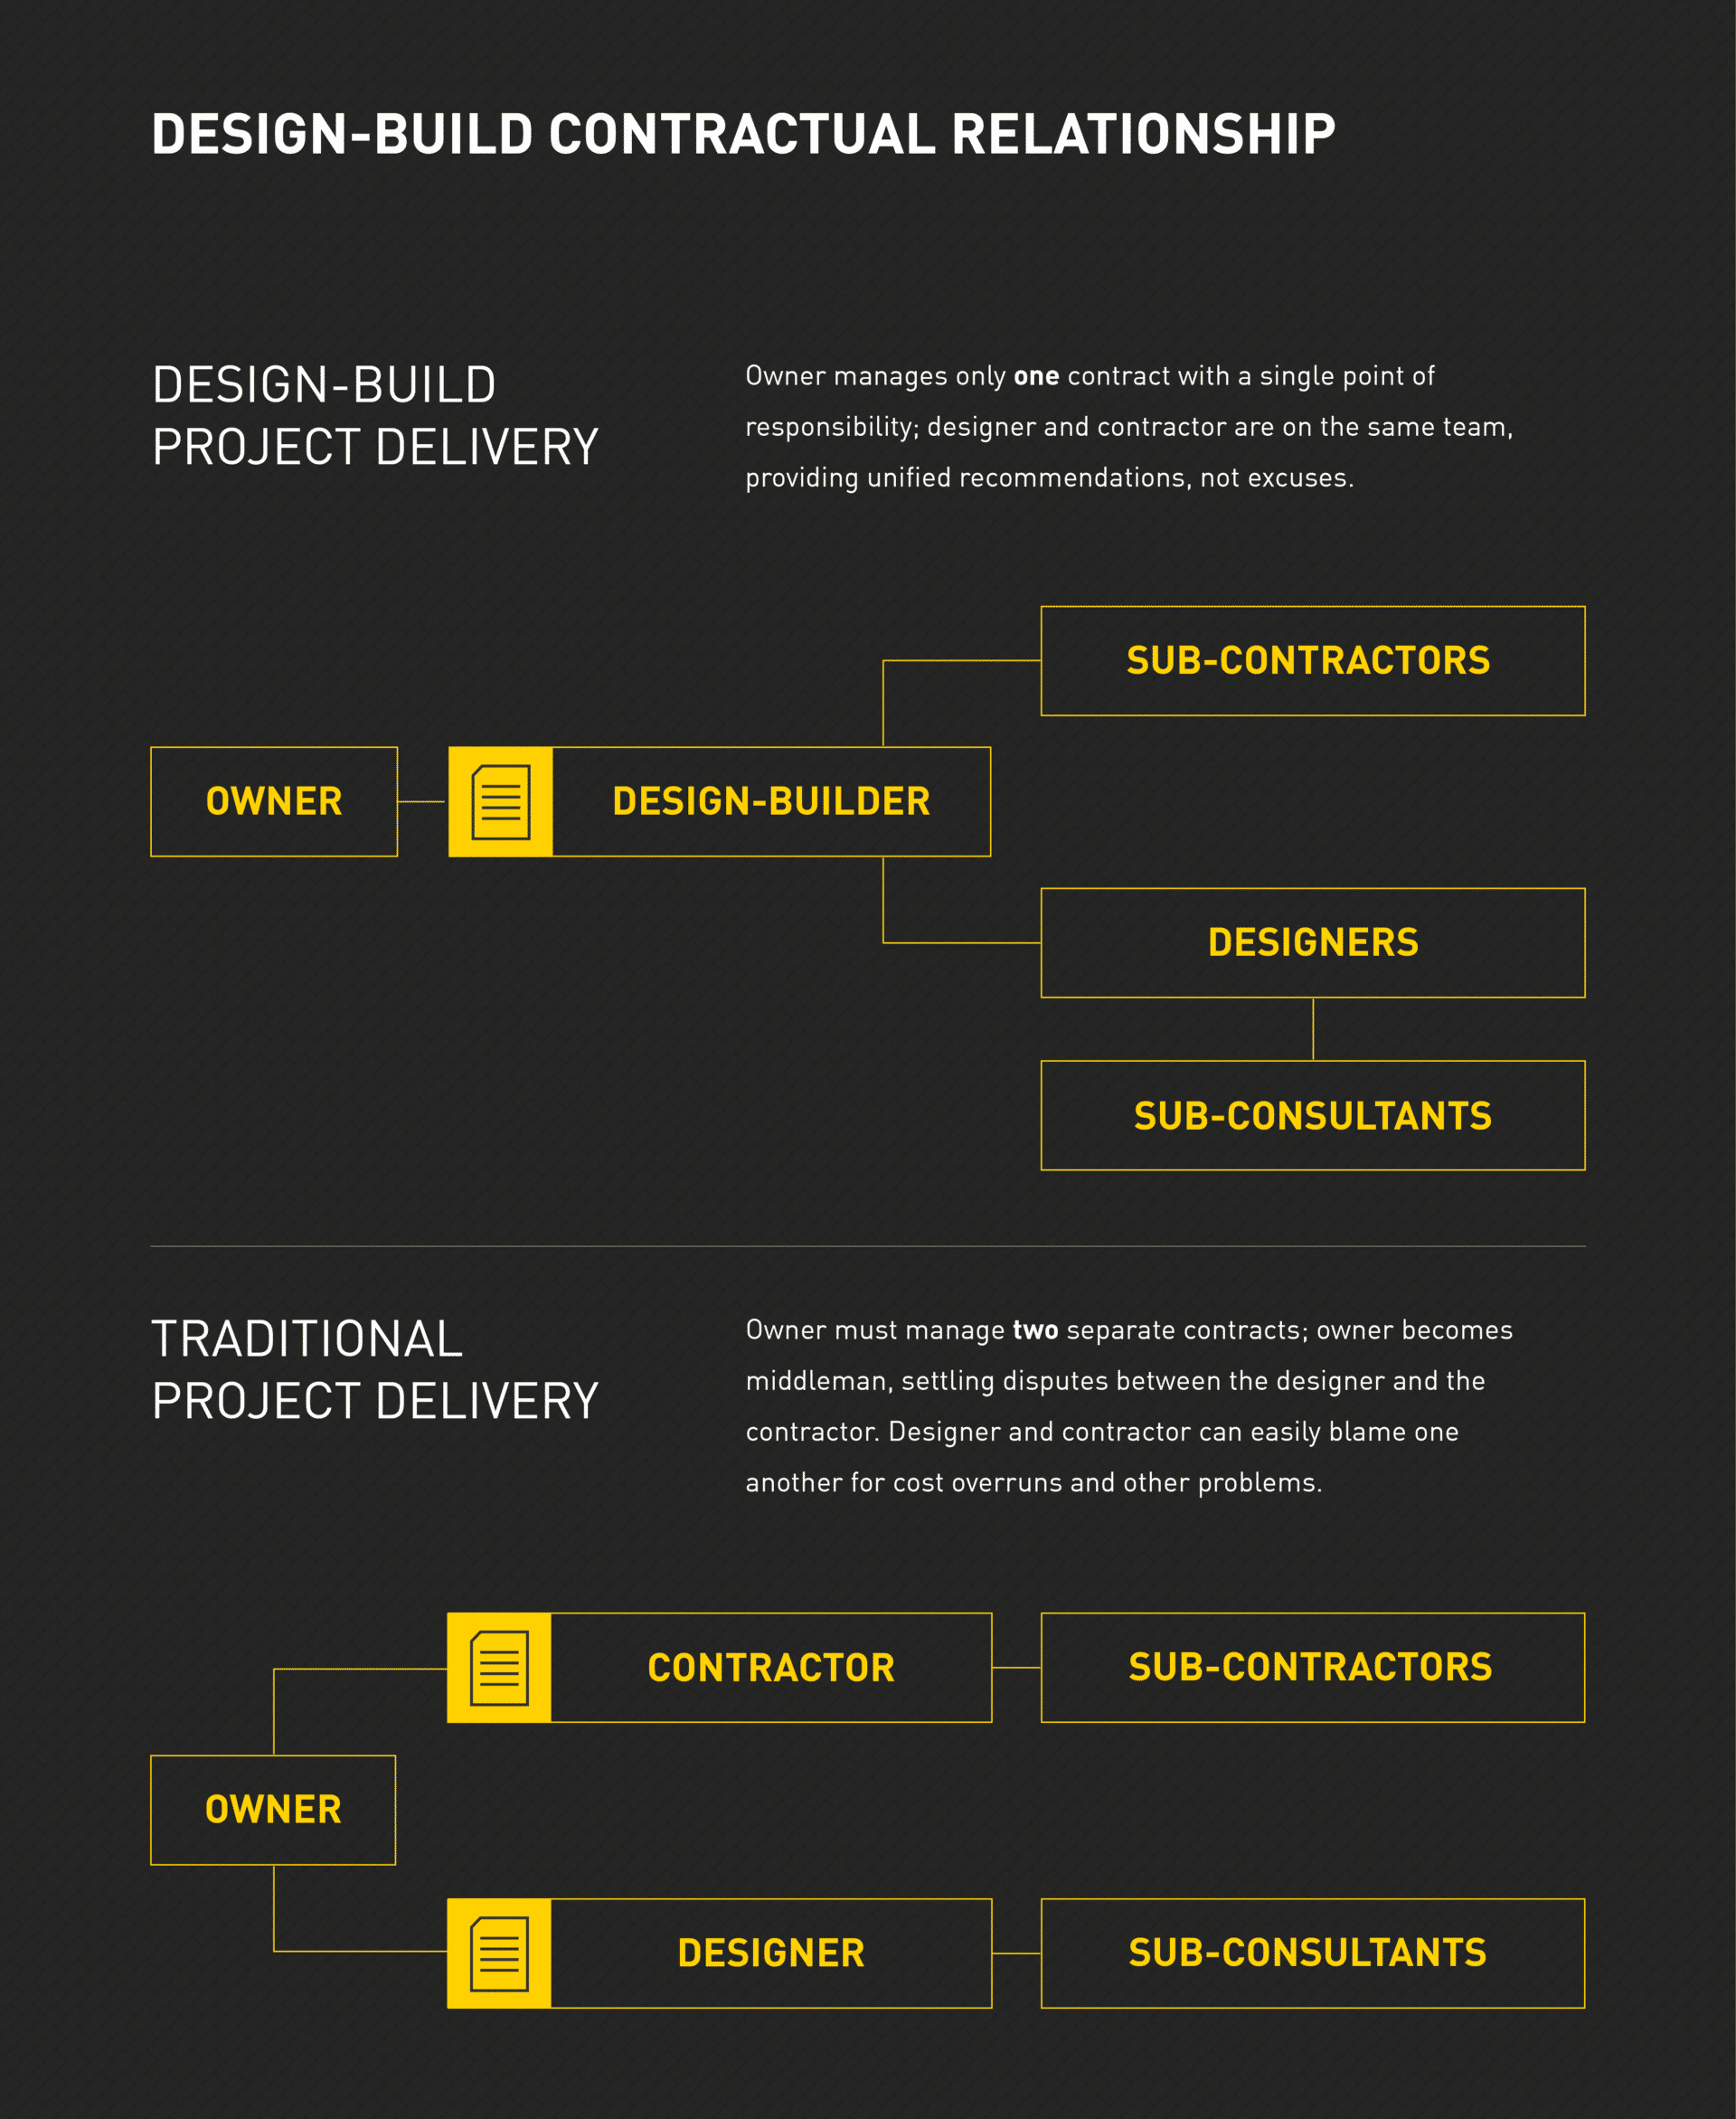 Design-Build vs. traditional project delivery contractual relationship comparison.